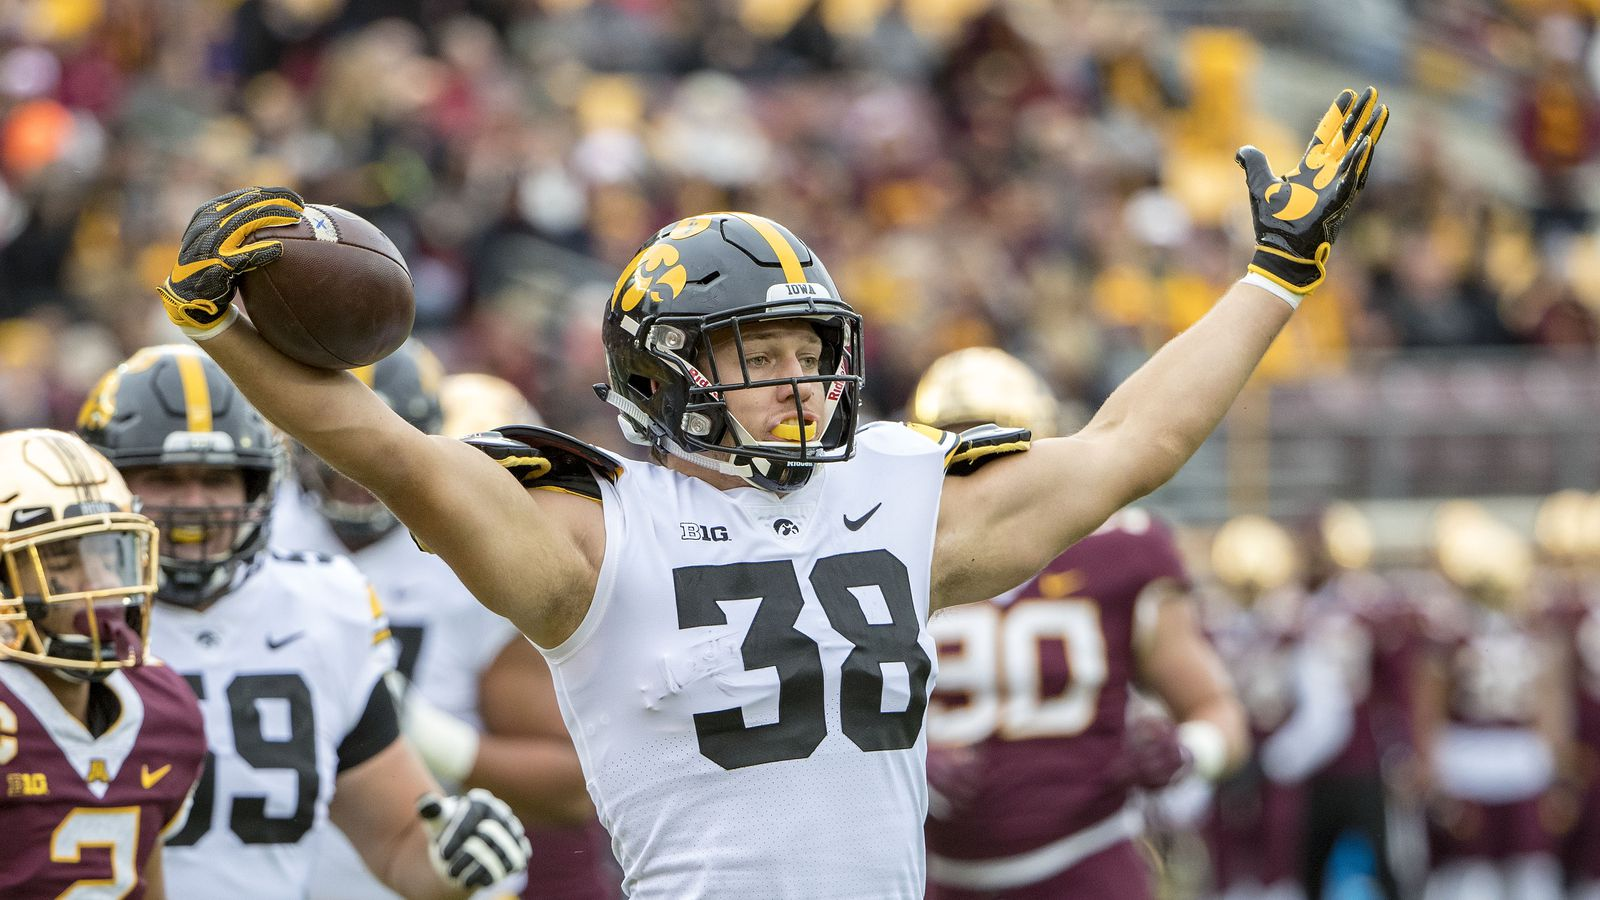 2019 NFL Draft: T.J. Hockenson fits every team's scheme at tight end